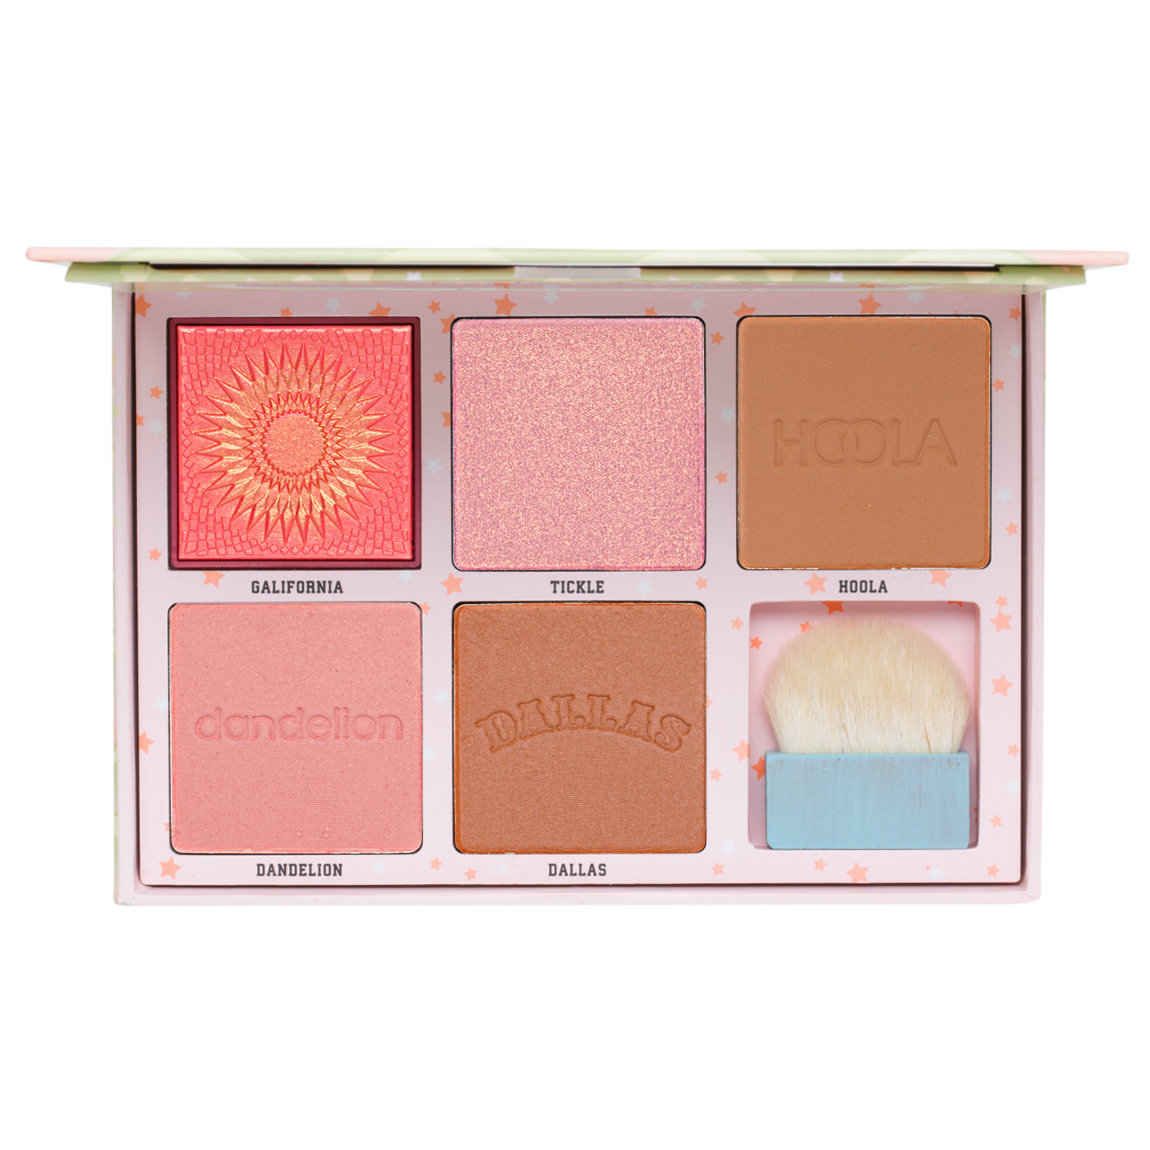 Benefit Cosmetics Cheekleaders Cheek Palette product swatch.